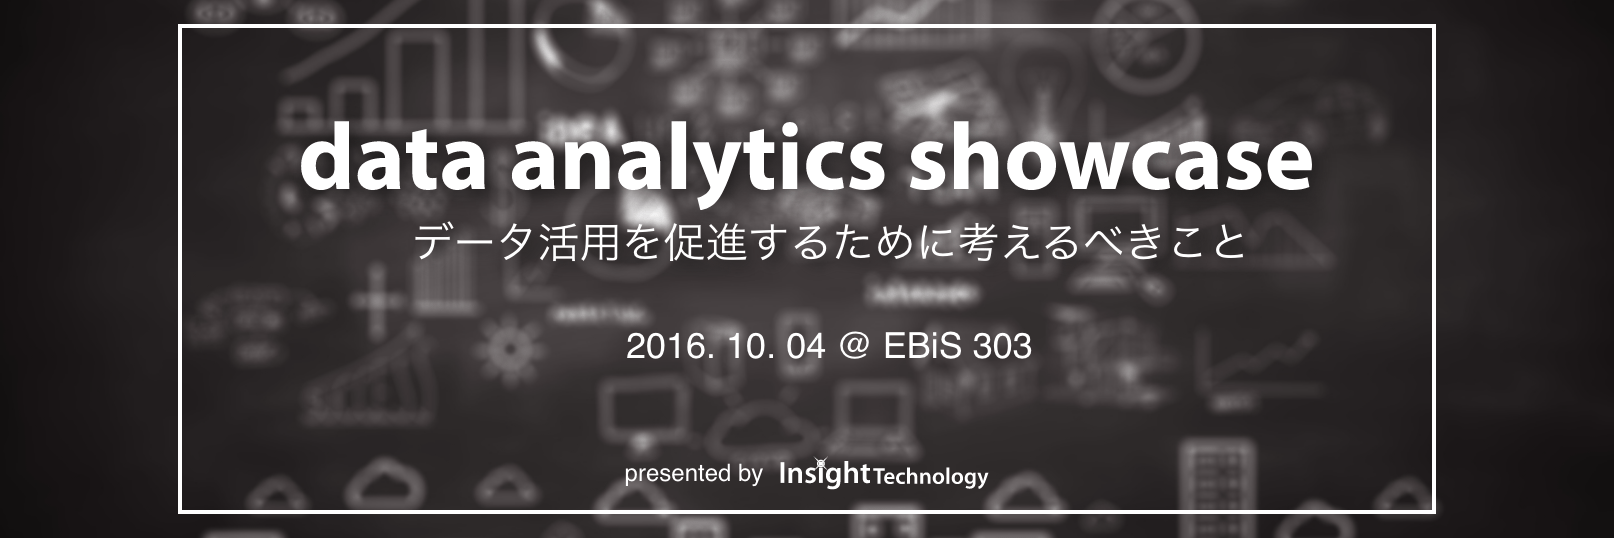 data analytics showcase 2016